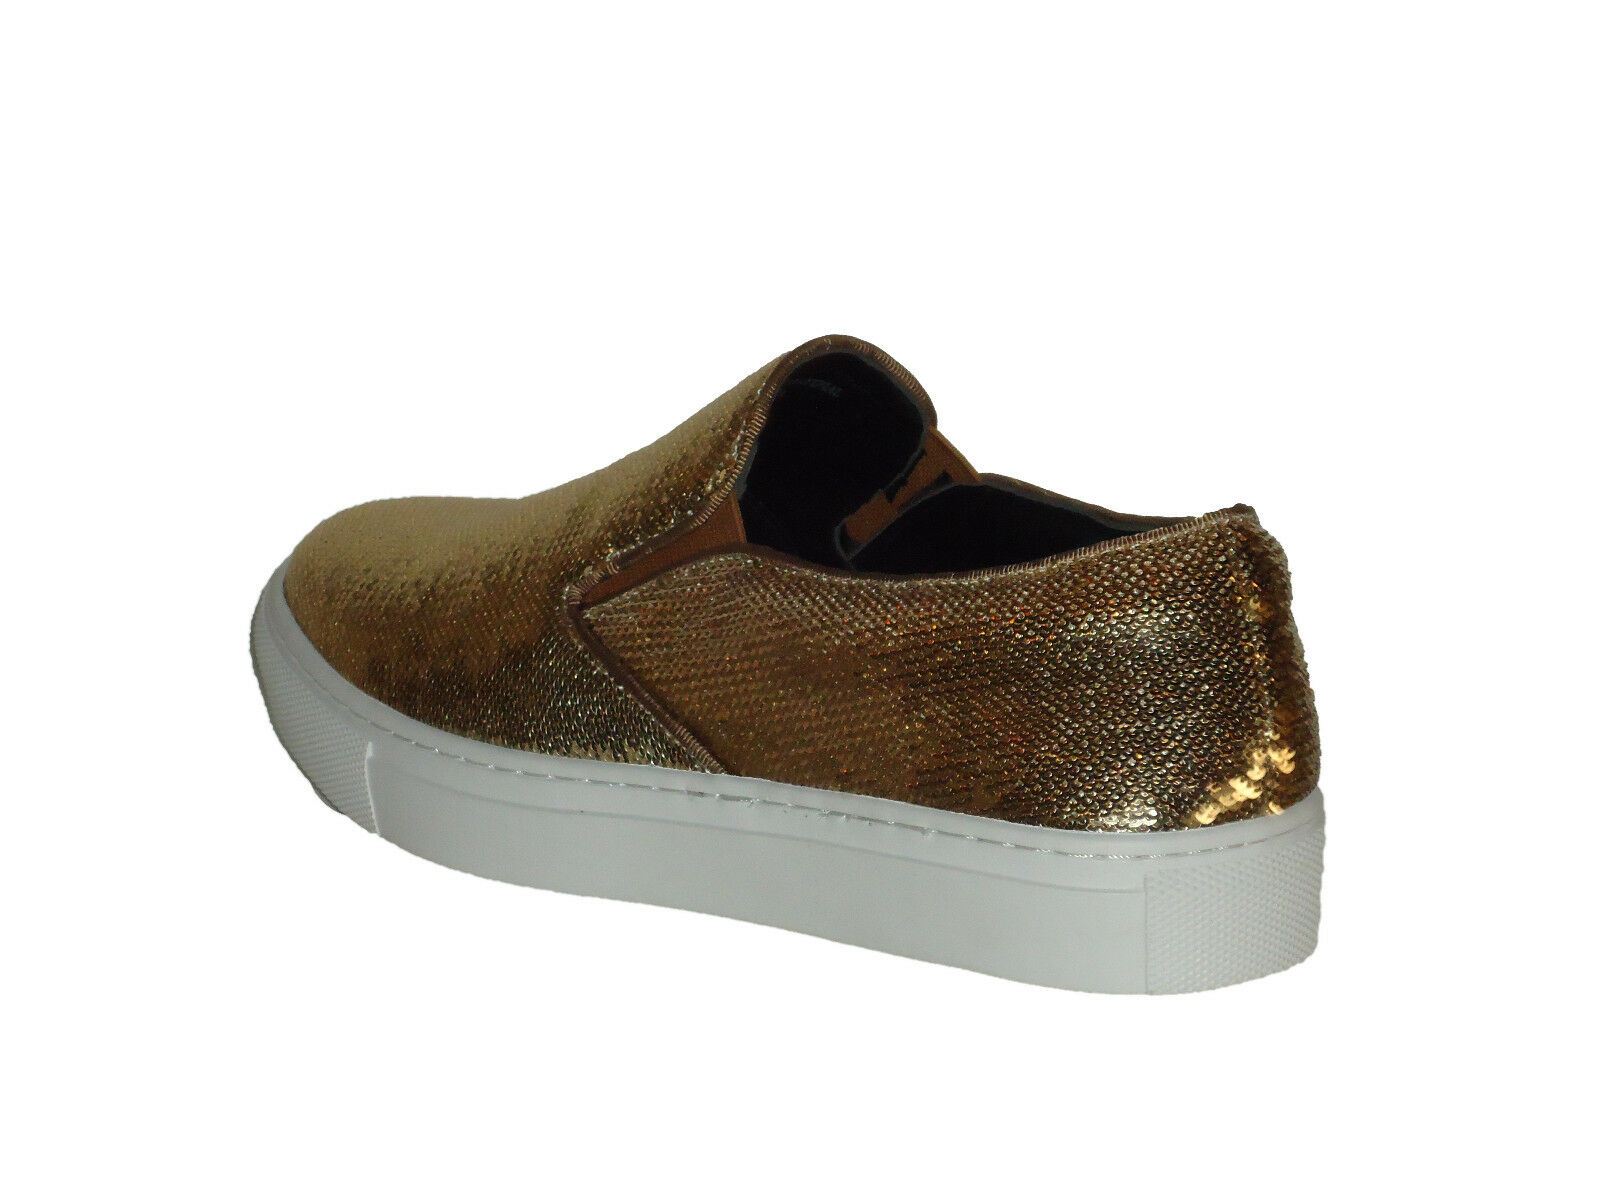 AM 6758 Uomo Fancy Dressy Slip On Rubber Sole Sole Sole  Sparkling Gold Sequins 4313e1